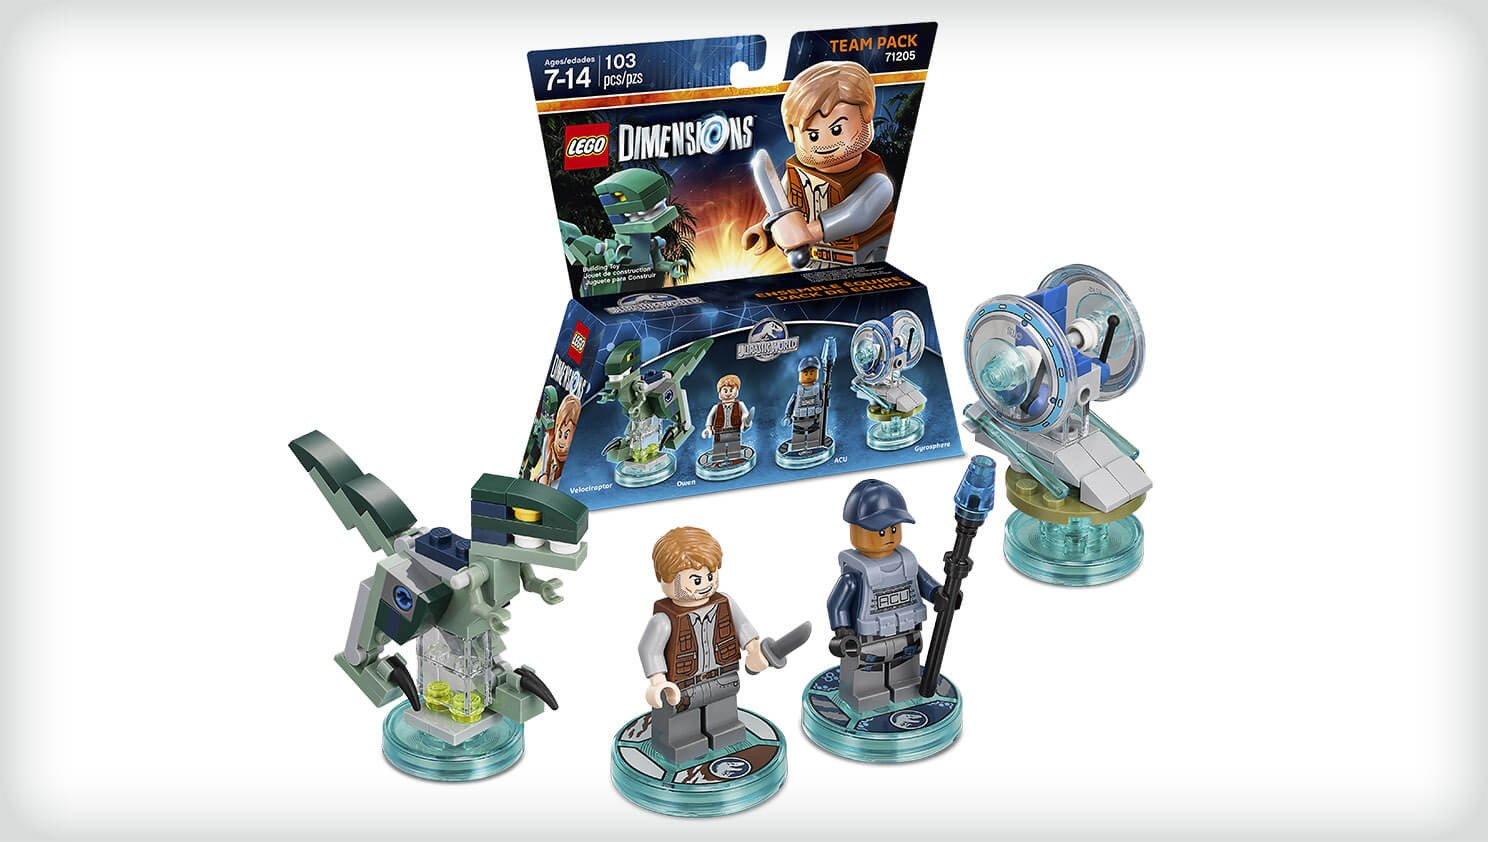 Pack Equipe Warner Bros 5051892187596 Owen /& Trooper Figurine Lego Dimensions Jurassic World